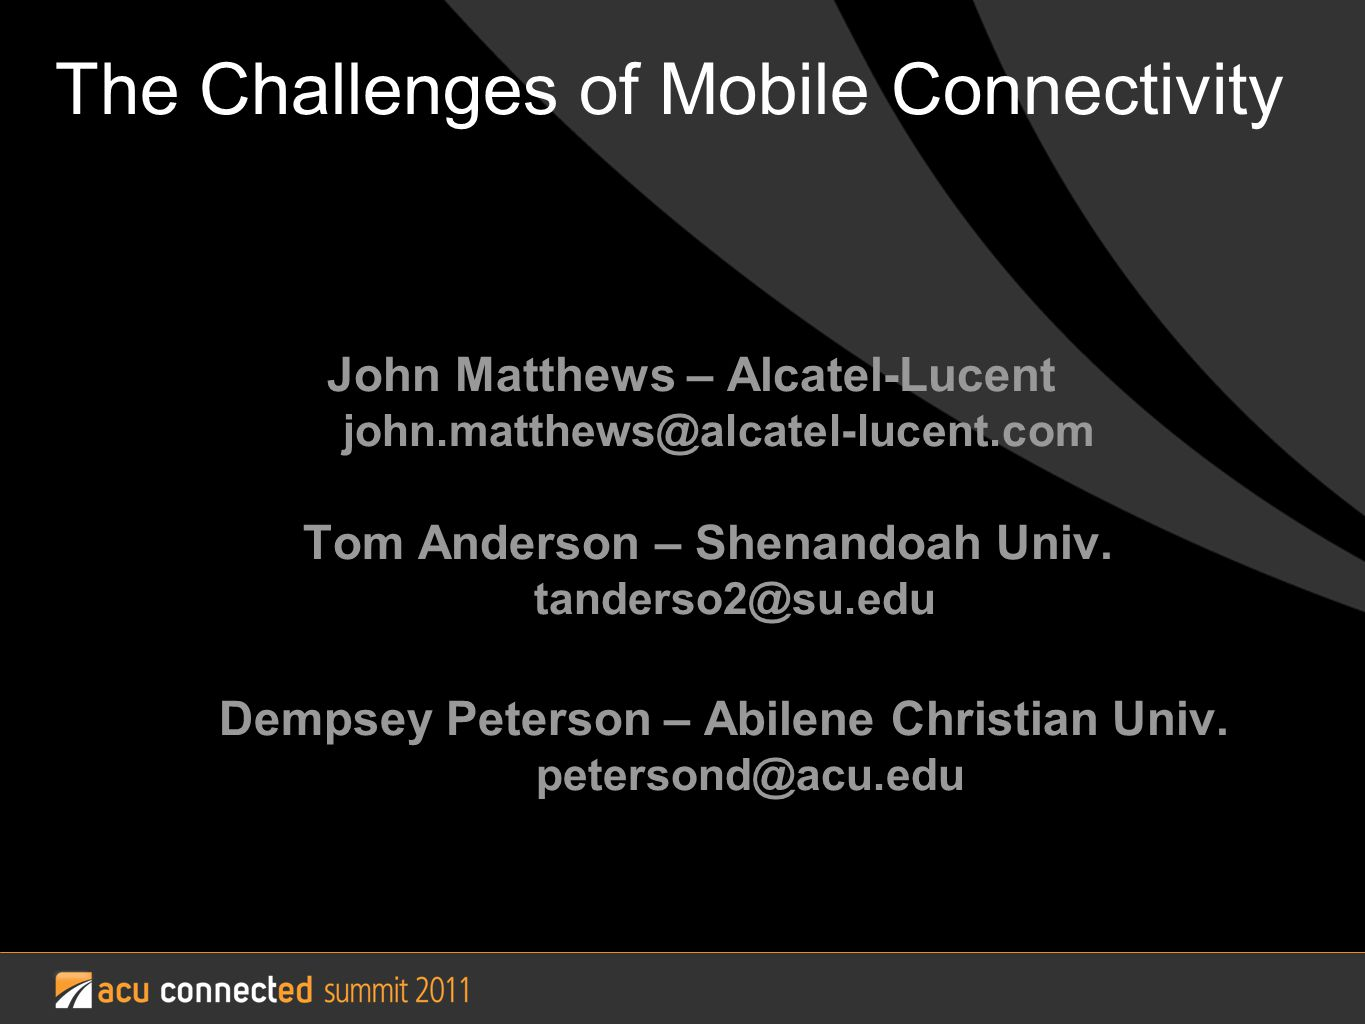 The Challenges of Mobile Connectivity John Matthews – Alcatel-Lucent john.matthews@alcatel-lucent.com Tom Anderson – Shenandoah Univ.